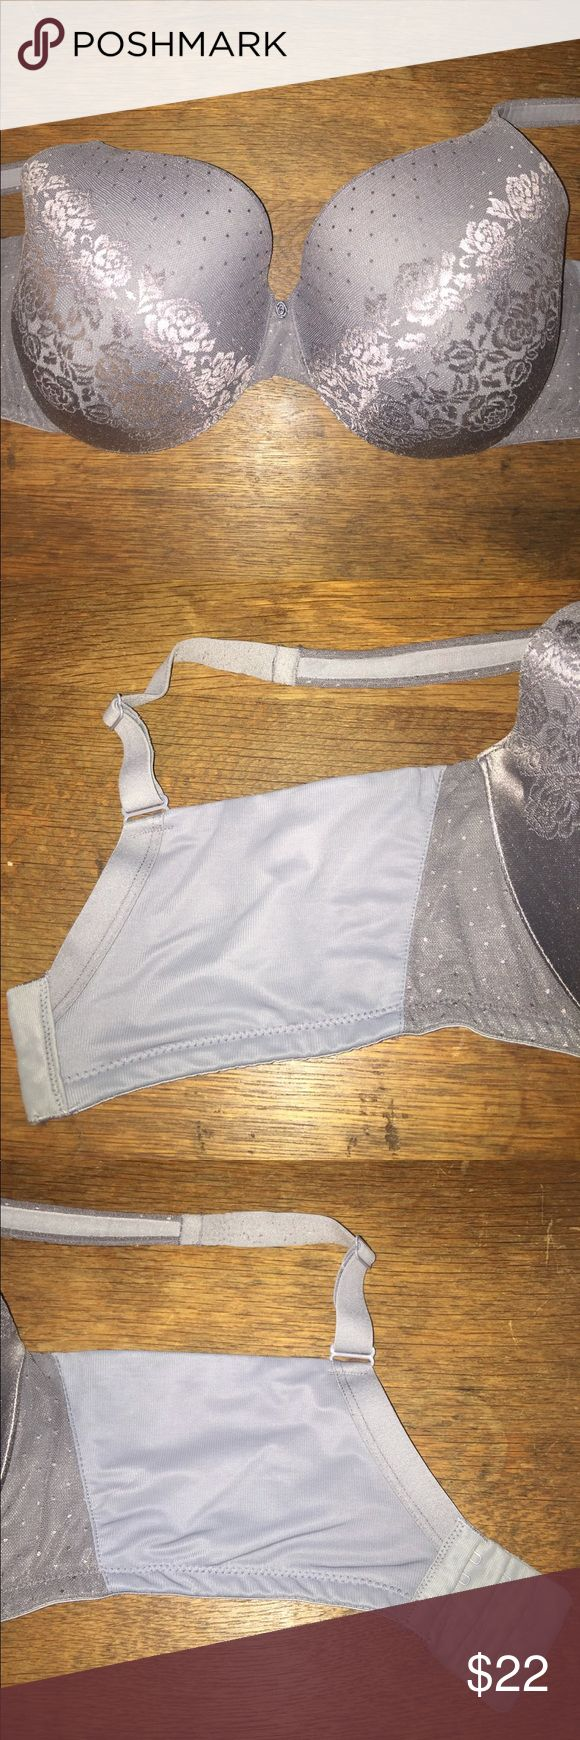 Soma gray Stunning Support bra 38G Very nice Soma bra.   Stunning Support No Show Minimizer.  38G.  Gray.  Some wear but has a lot of life yet.   Priced accordingly. Soma Intimates & Sleepwear Bras